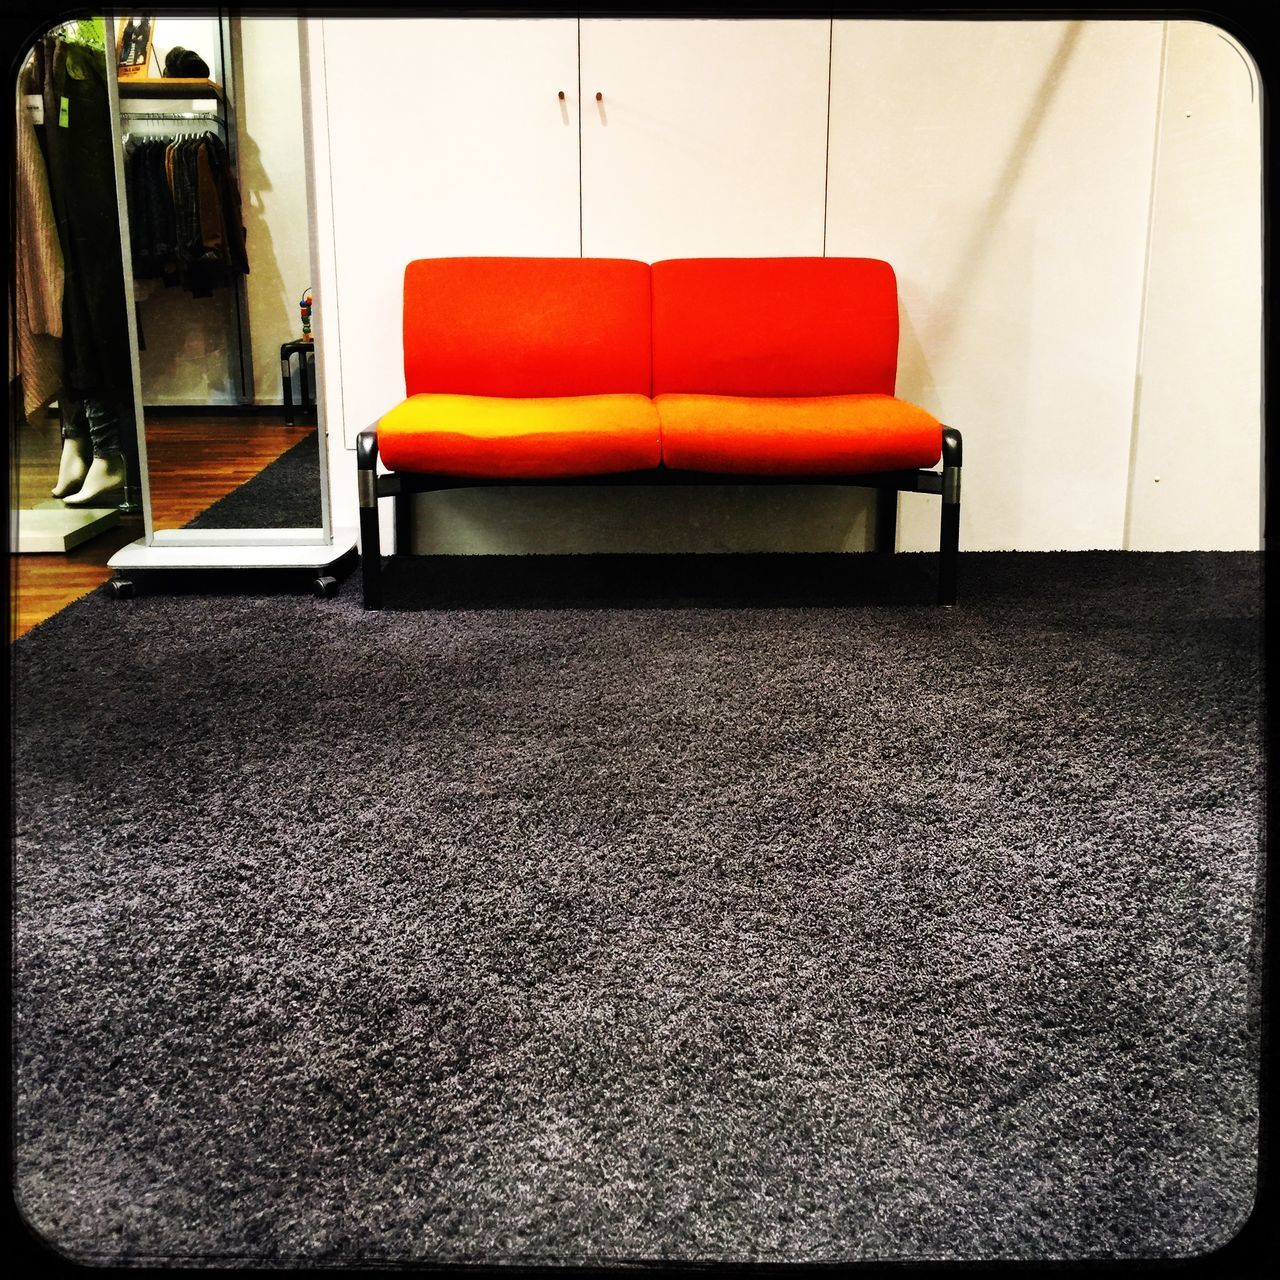 Orange couch Couch Sofa Interior Design Interior Orange Color Color Room Shop Home Floor Design Modern Style Living Furnitures Inddors Contrast Space Mirror Grey Carpet Lifestyle Cheerful Simple